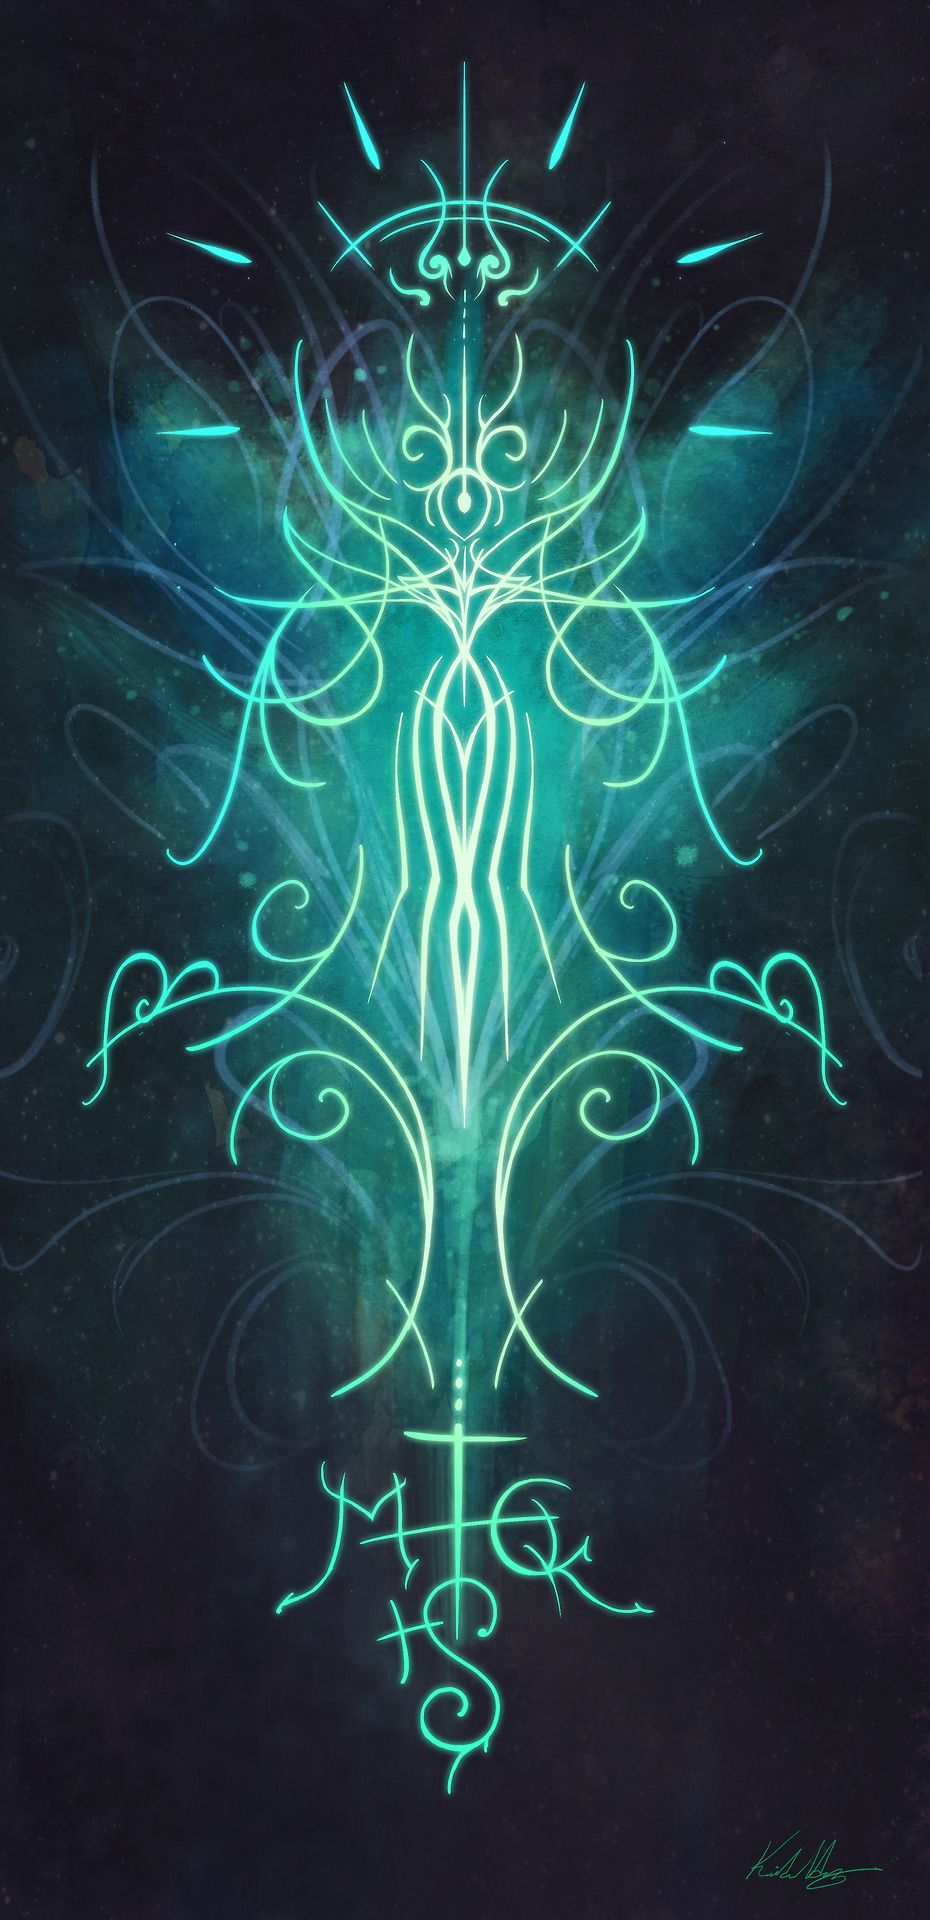 Sigil Of Health Beauty And Wellness Or More Specifically A Sigil